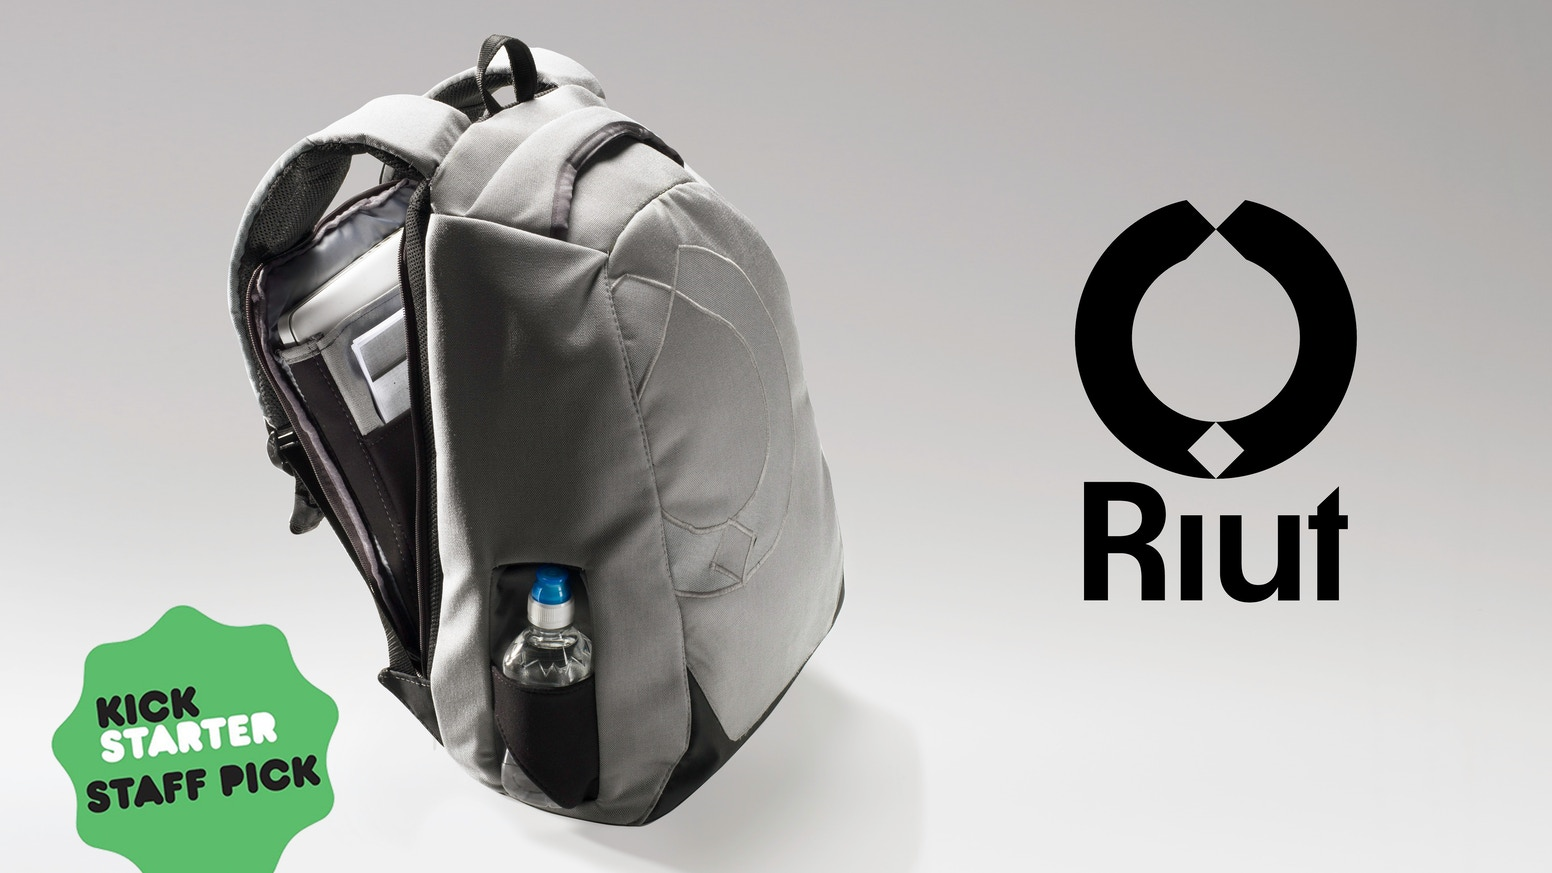 Secure laptop backpack with no outer zips. They're all against your back for safe, calm city travel, to work and on holiday. Now available at www.riut.co.uk